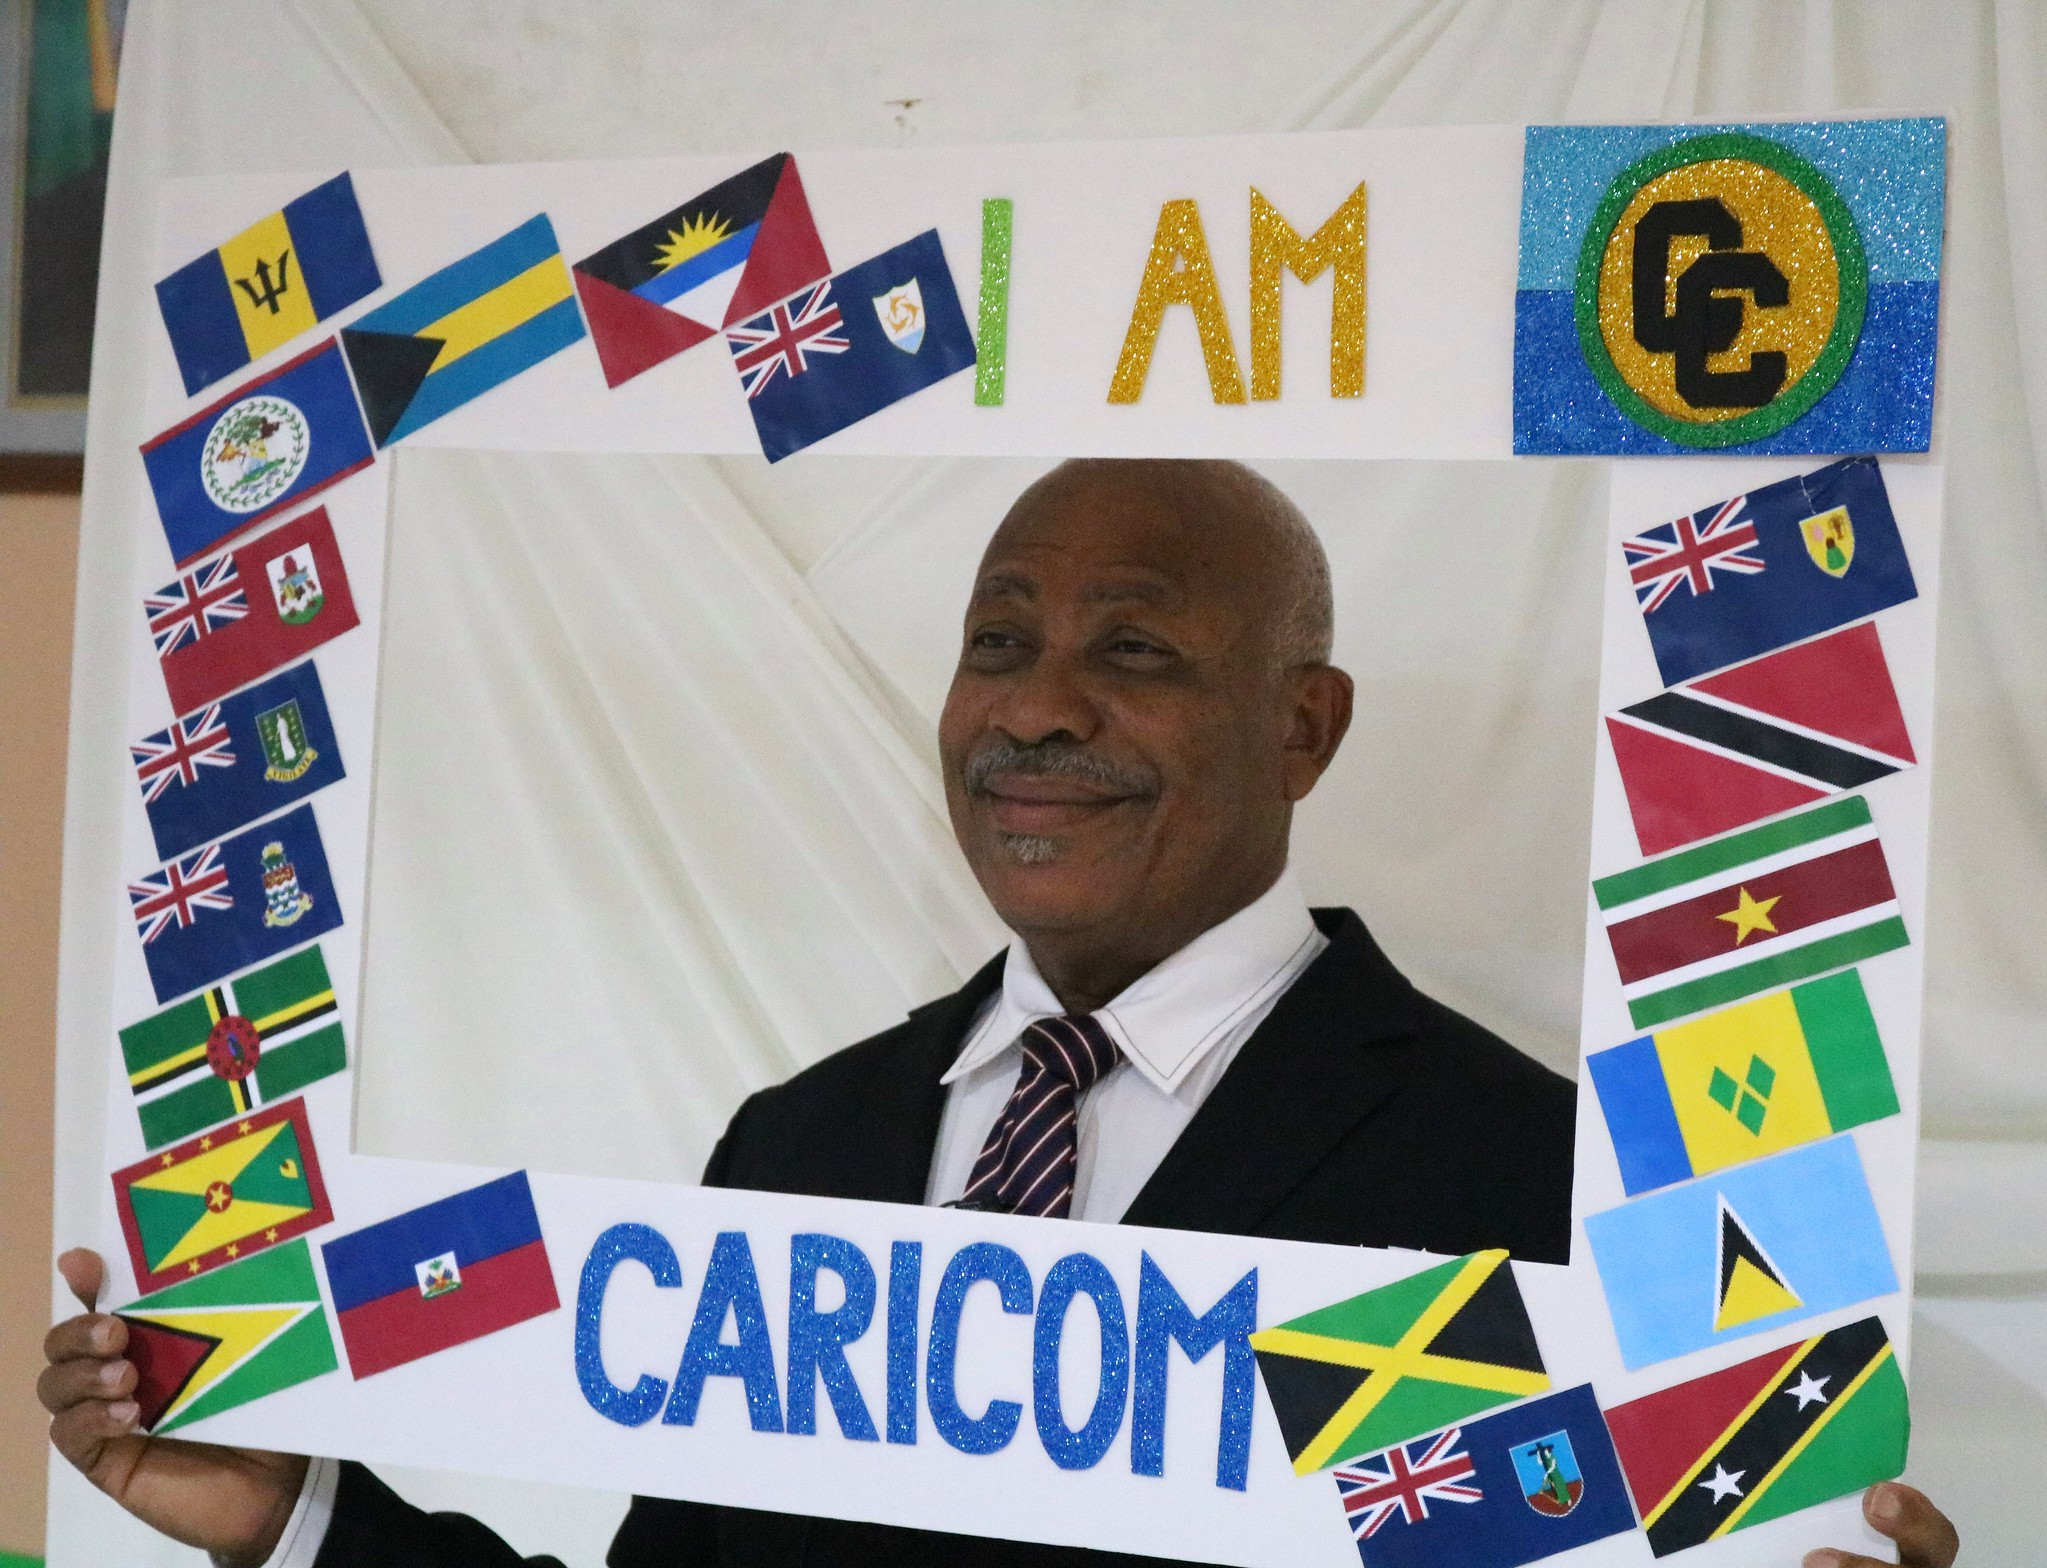 `CARICOM is for all of us, working together ' - H.E. Felix Gregoire, Dominica's Ambassador to CARICOM